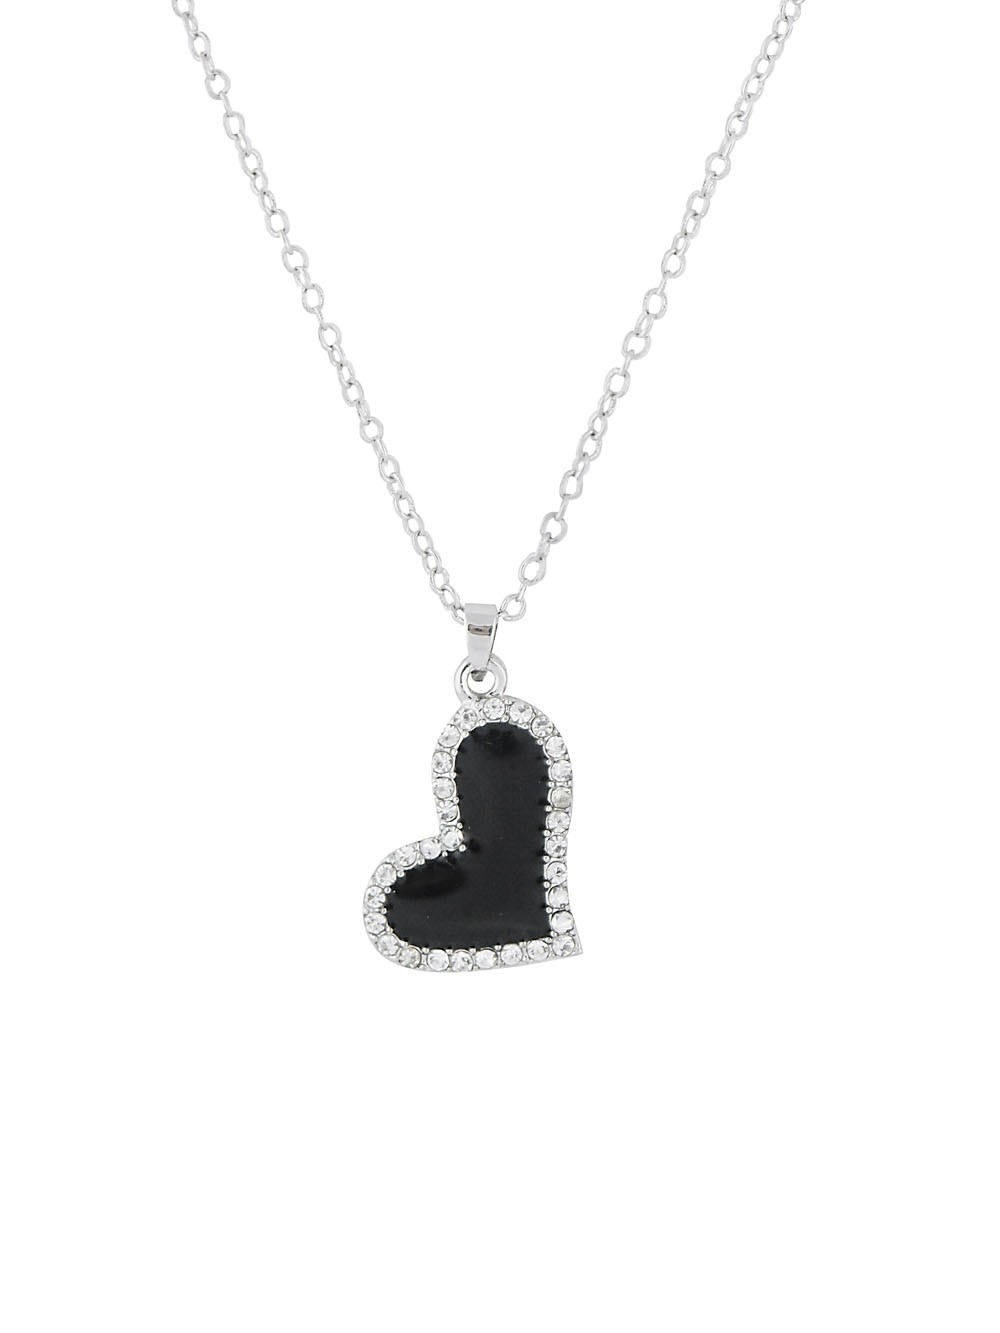 Black Heart Pendant Necklace With Clear Crystal